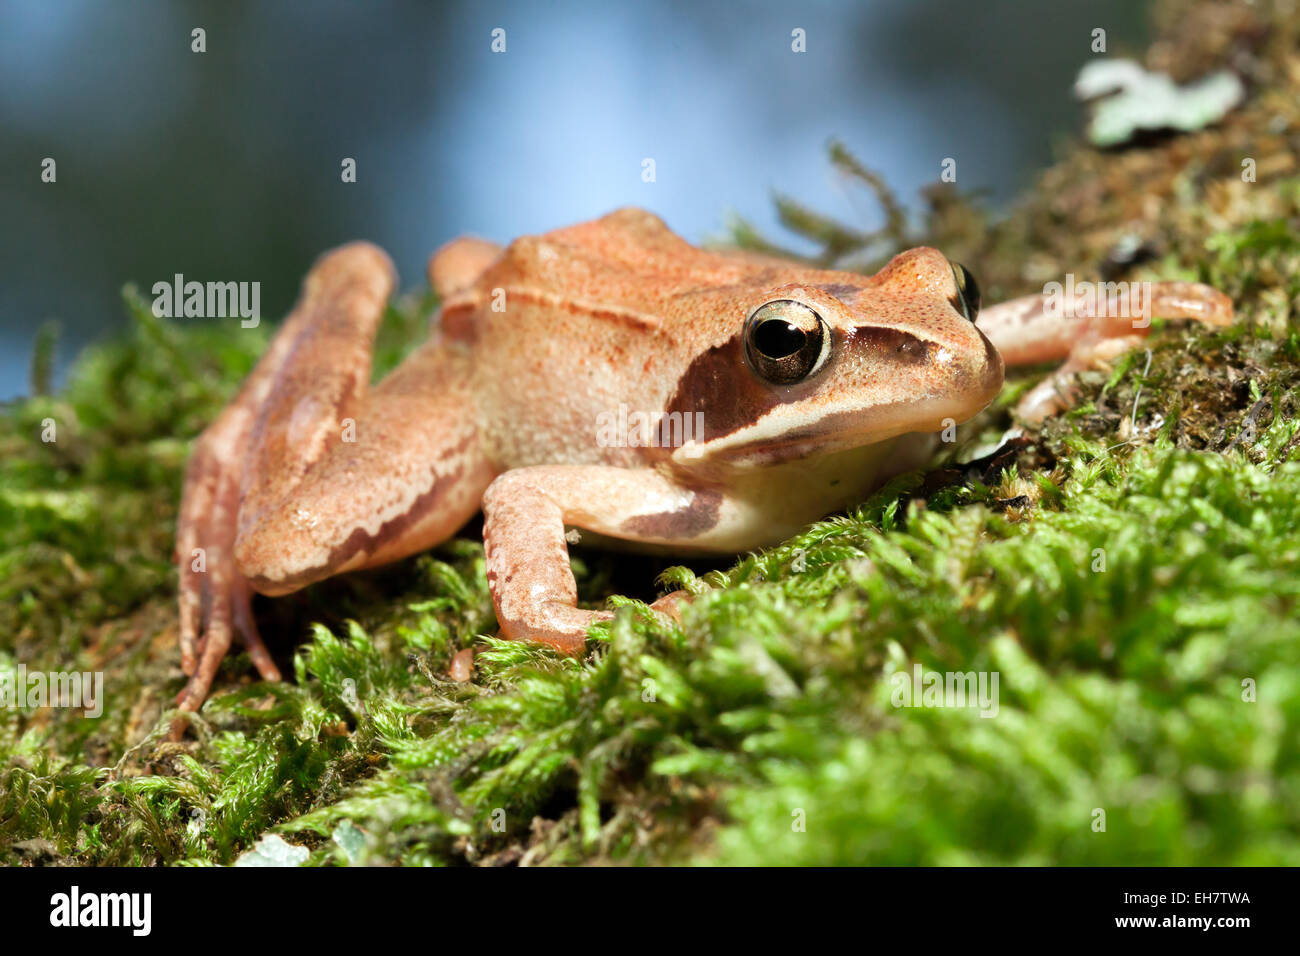 Rana Temporaria - Brown Frog on Green Moss - Stock Image